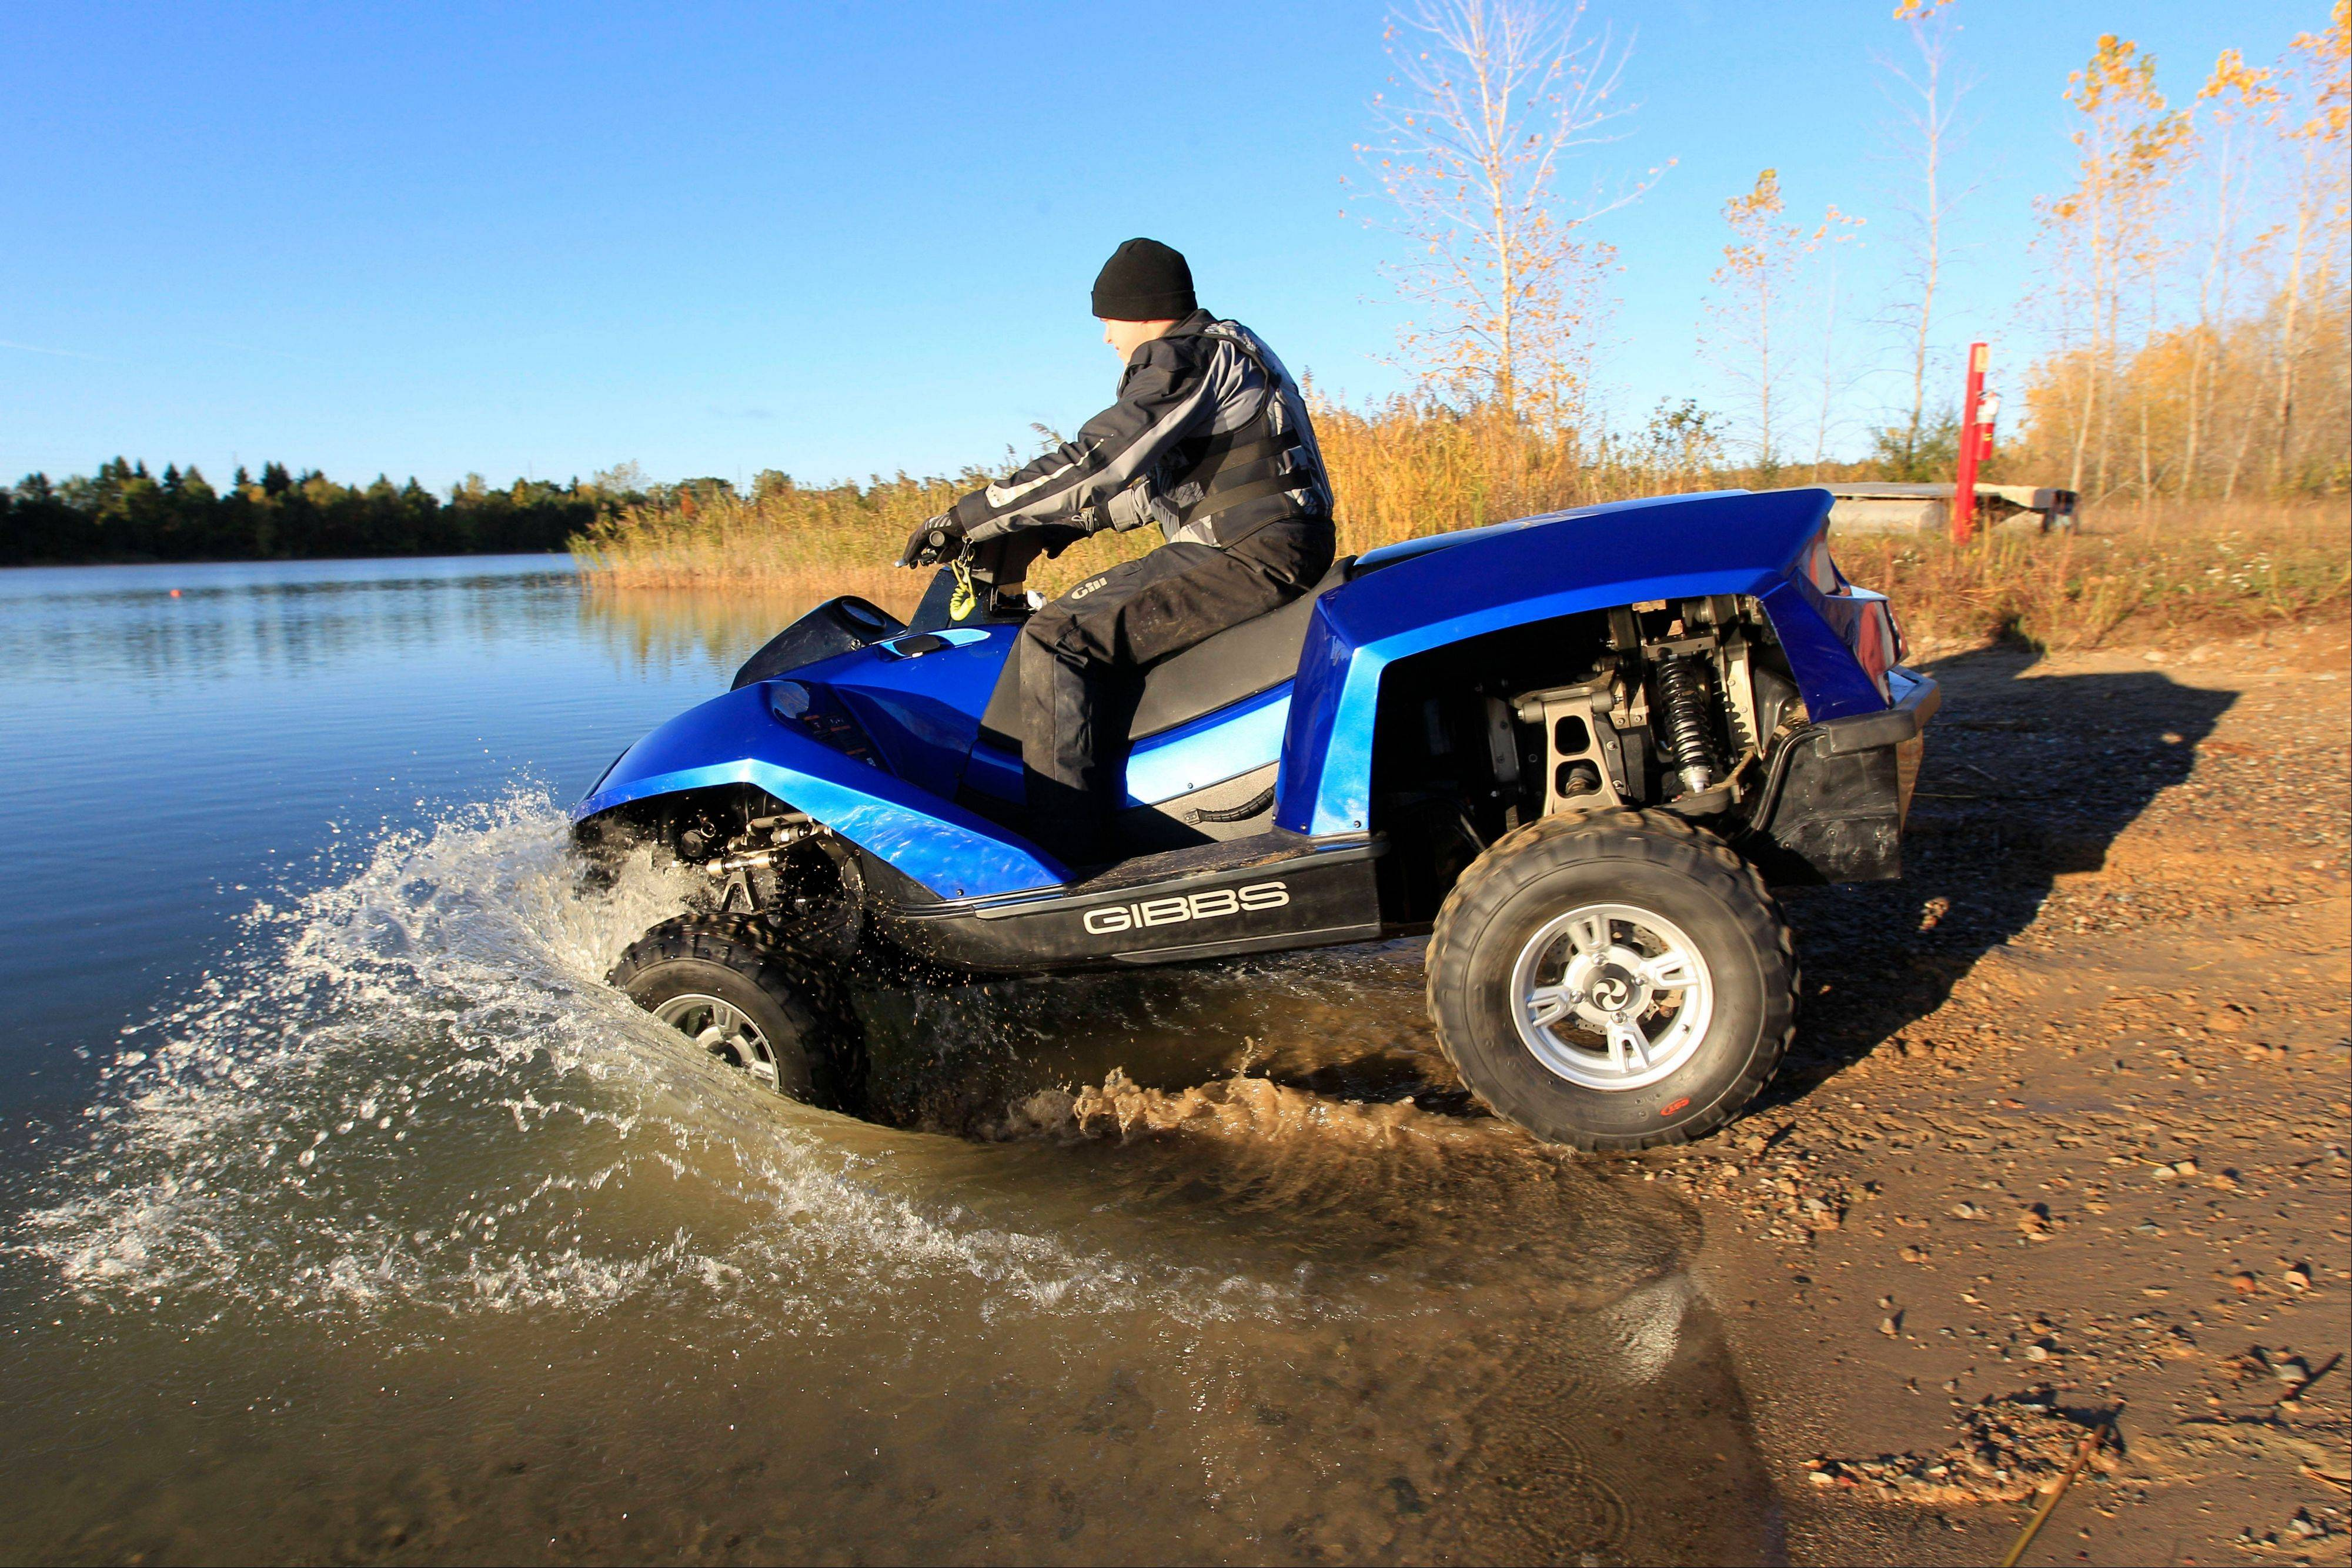 The Quadski, a one-person motor boat that also drives on land, is tested in Oxford Mich. The vehicle is being billed as the first commercially available, high-speed amphibious vehicle by its makers, Michigan-based Gibbs Technologies.